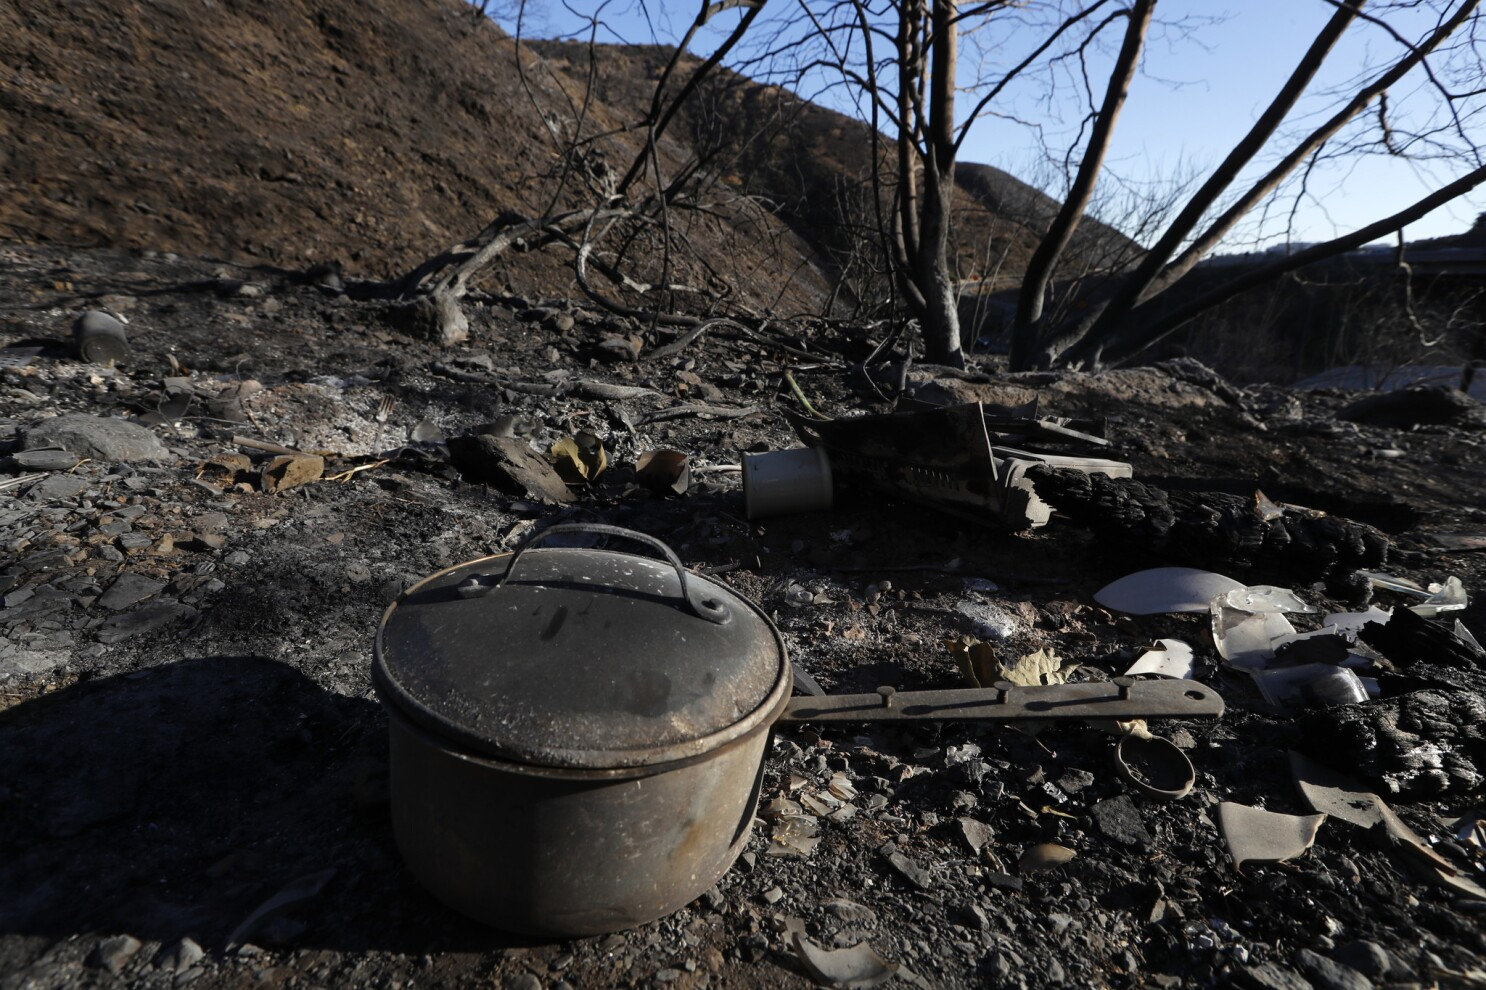 To prevent wildfires, L.A. wants to make it easier to clear homeless encampments